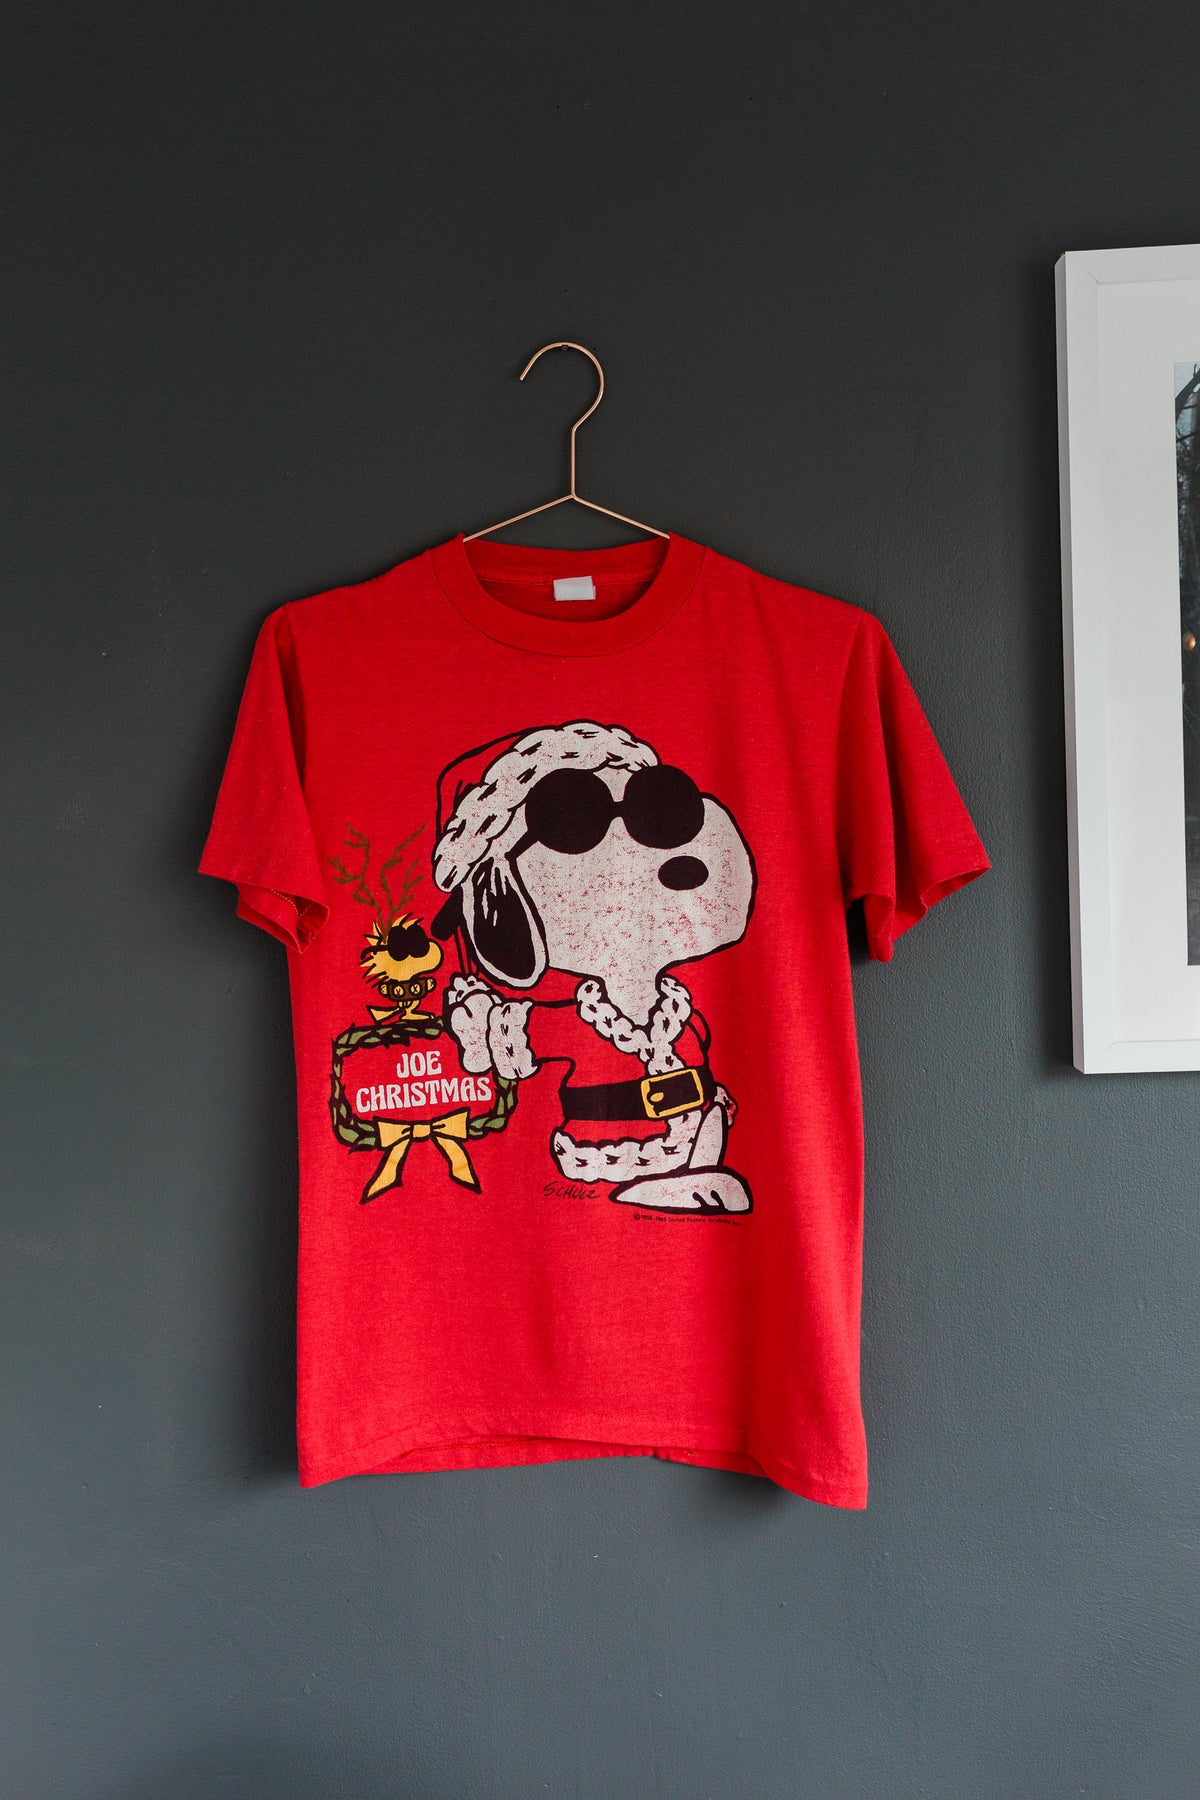 Image of 1980's Vintage Snoopy and Woodstock 'Joe Christmas' Tee